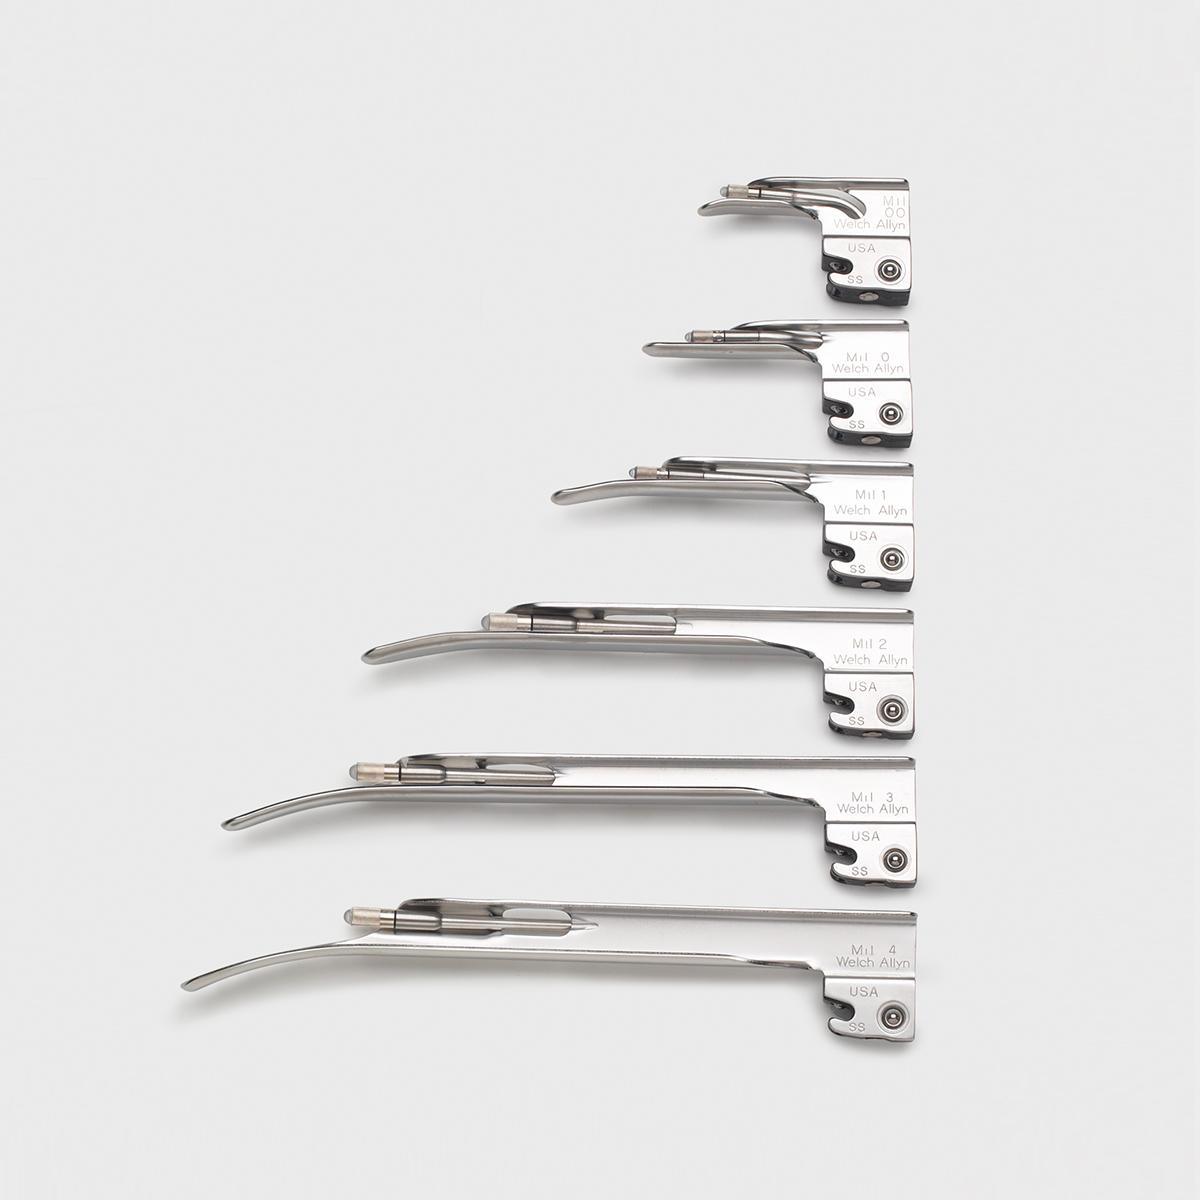 Six Standard (Lamp) Laryngoscope System Miller blades of various length